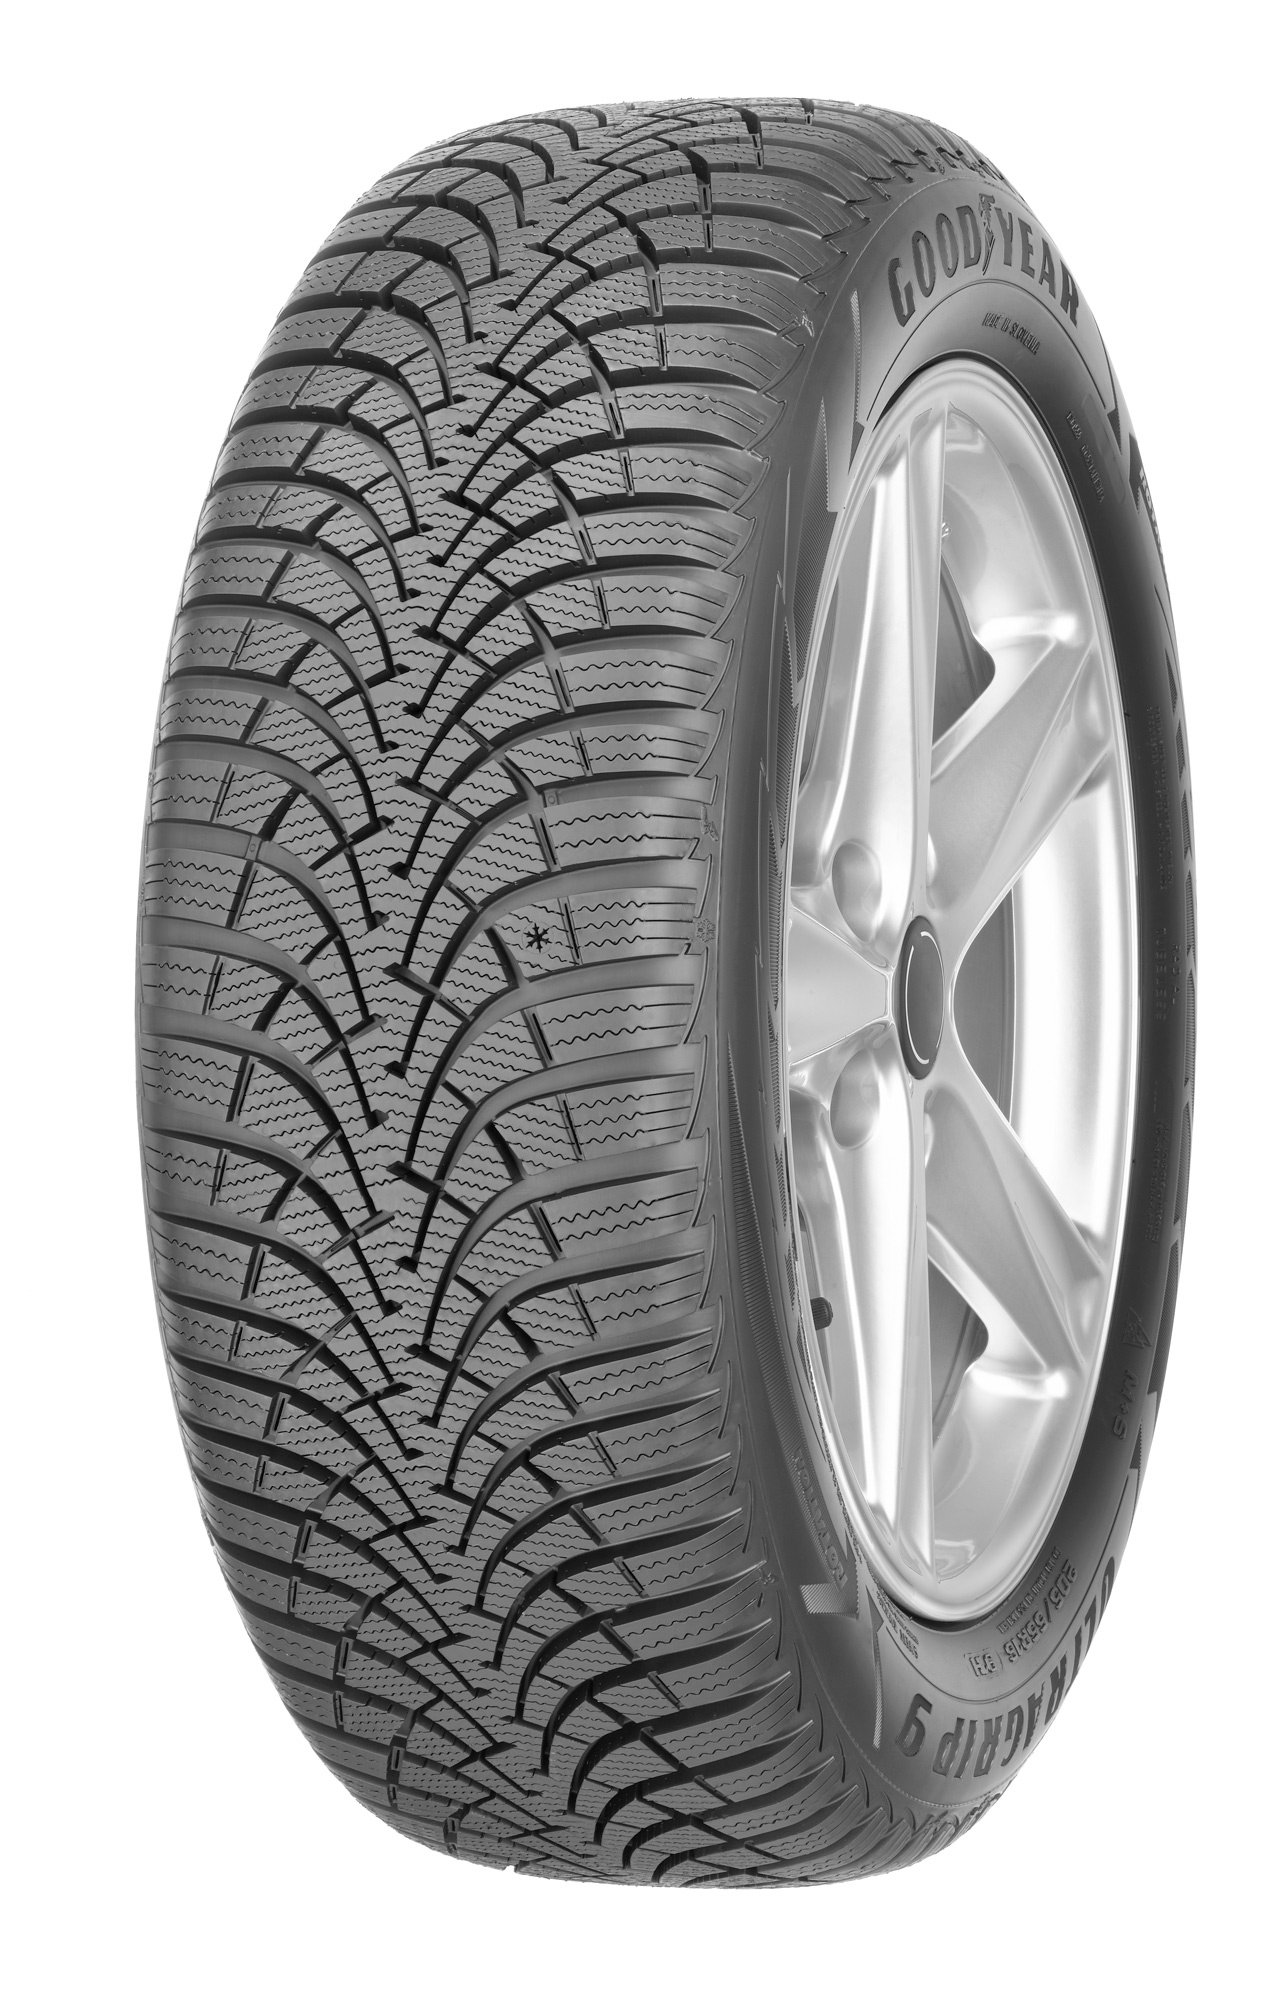 Anvelope iarna GOODYEAR ULTRA GRIP 9 195/65 R15 91T